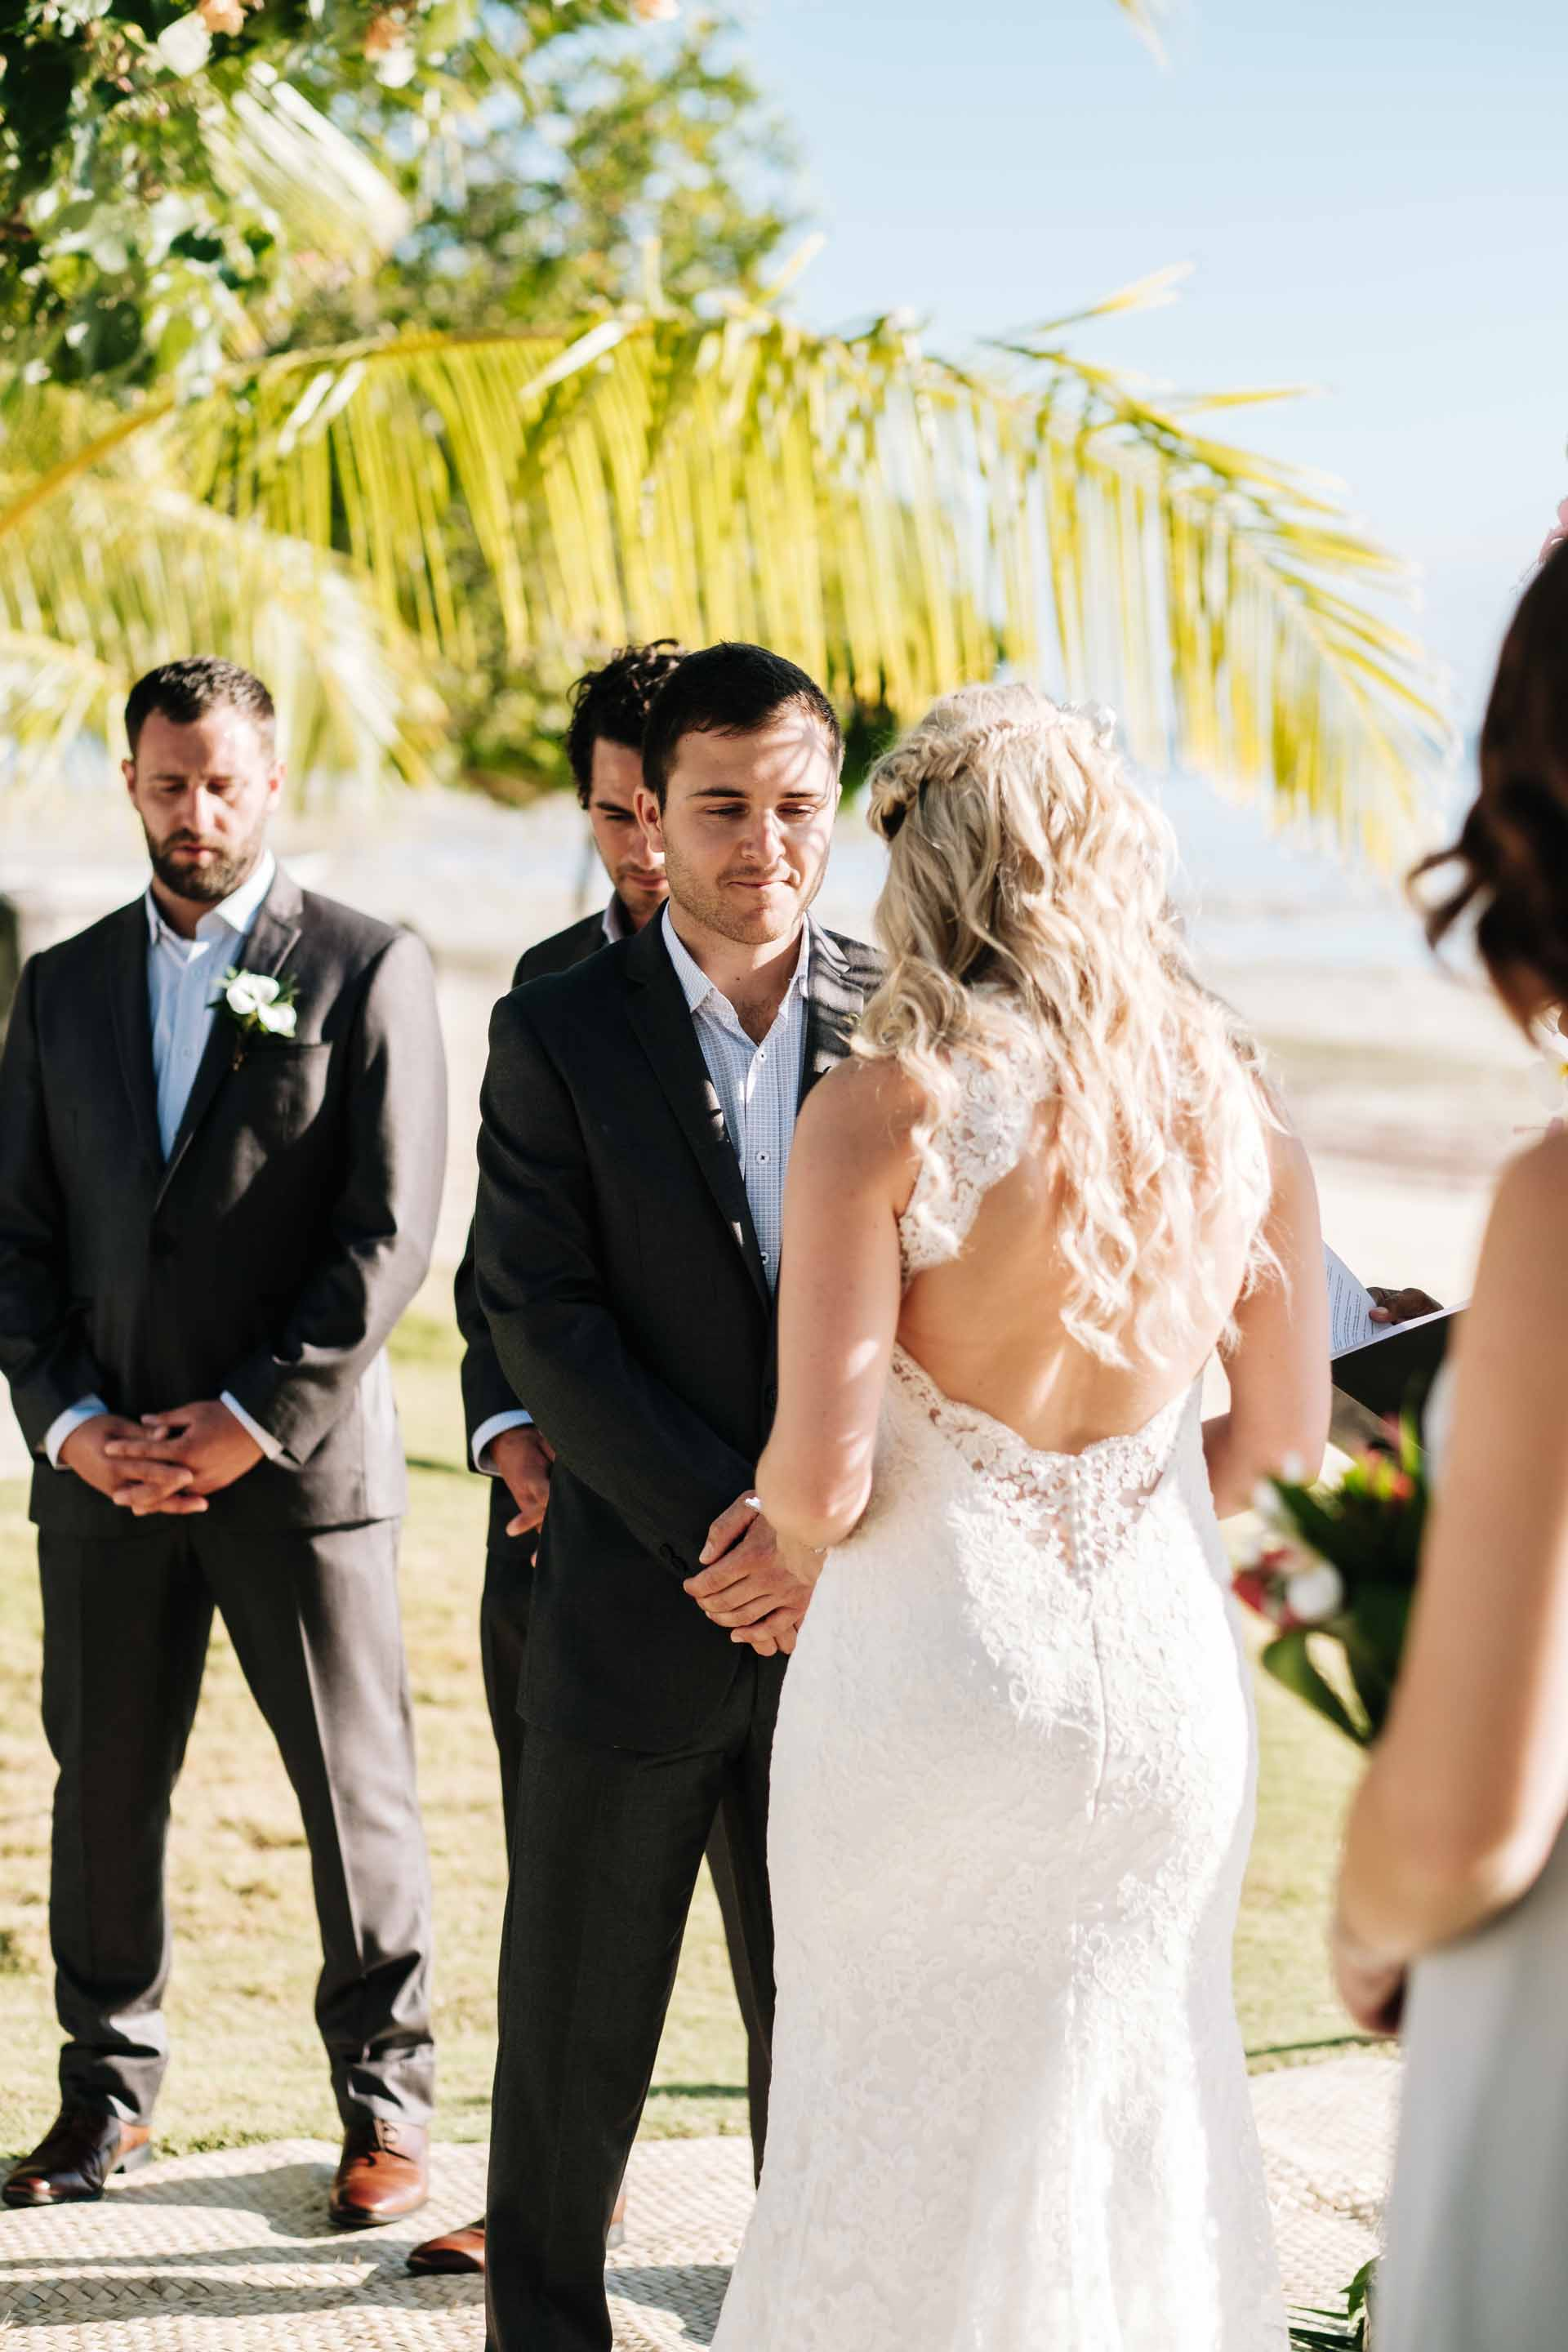 Cameron the groom listening to Holly the bride read her vows